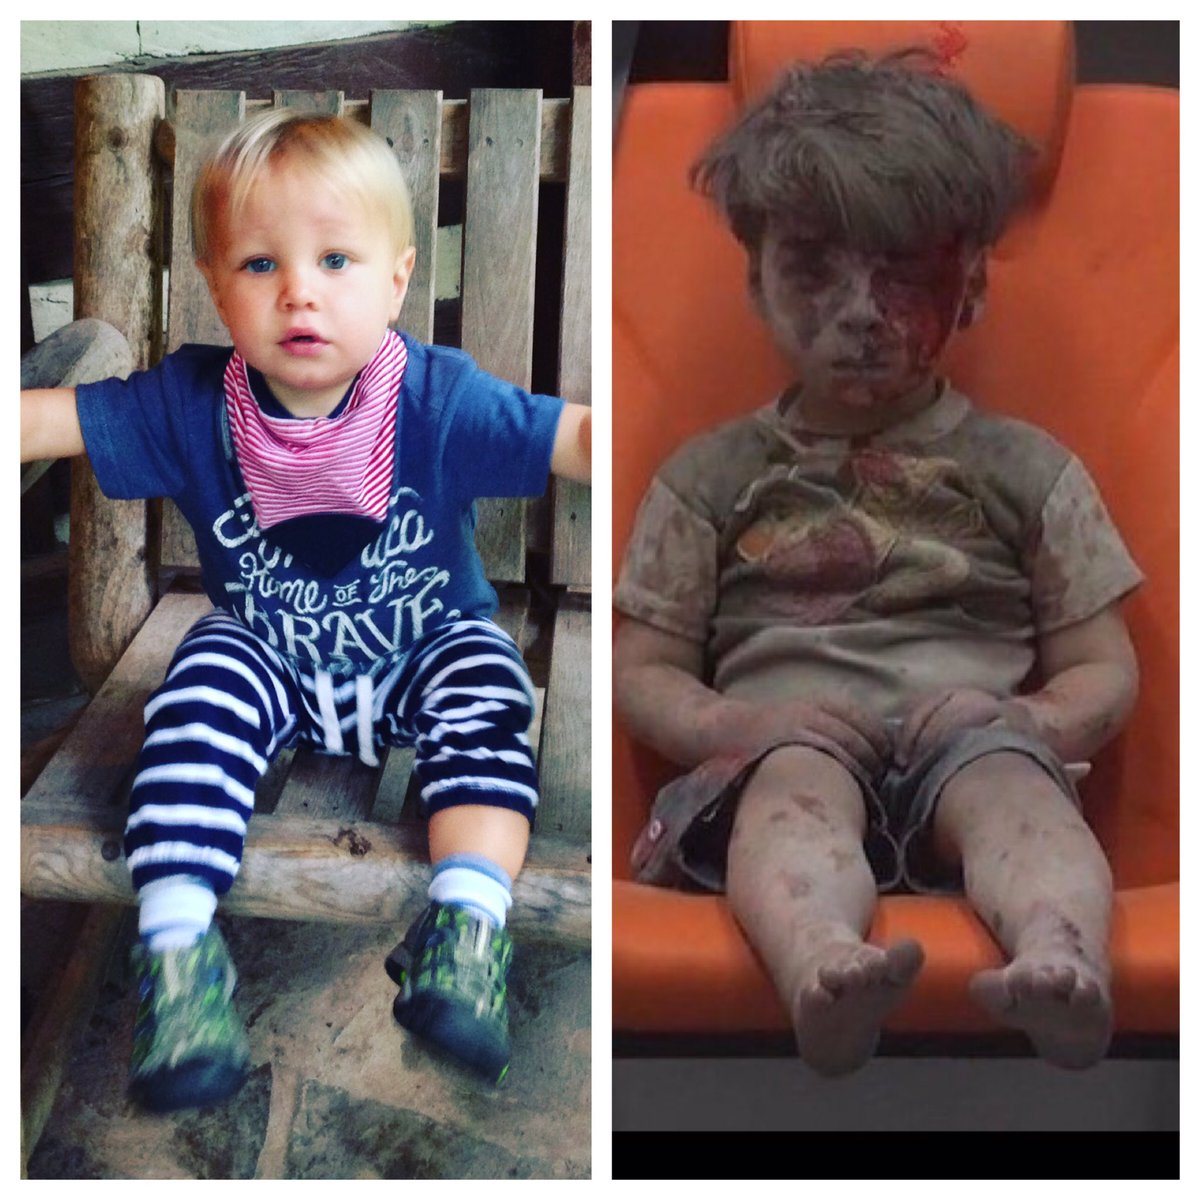 This is my son. And this is my son in Syria. We must act. #StandWithAleppo https://t.co/rpfhpiqD0D